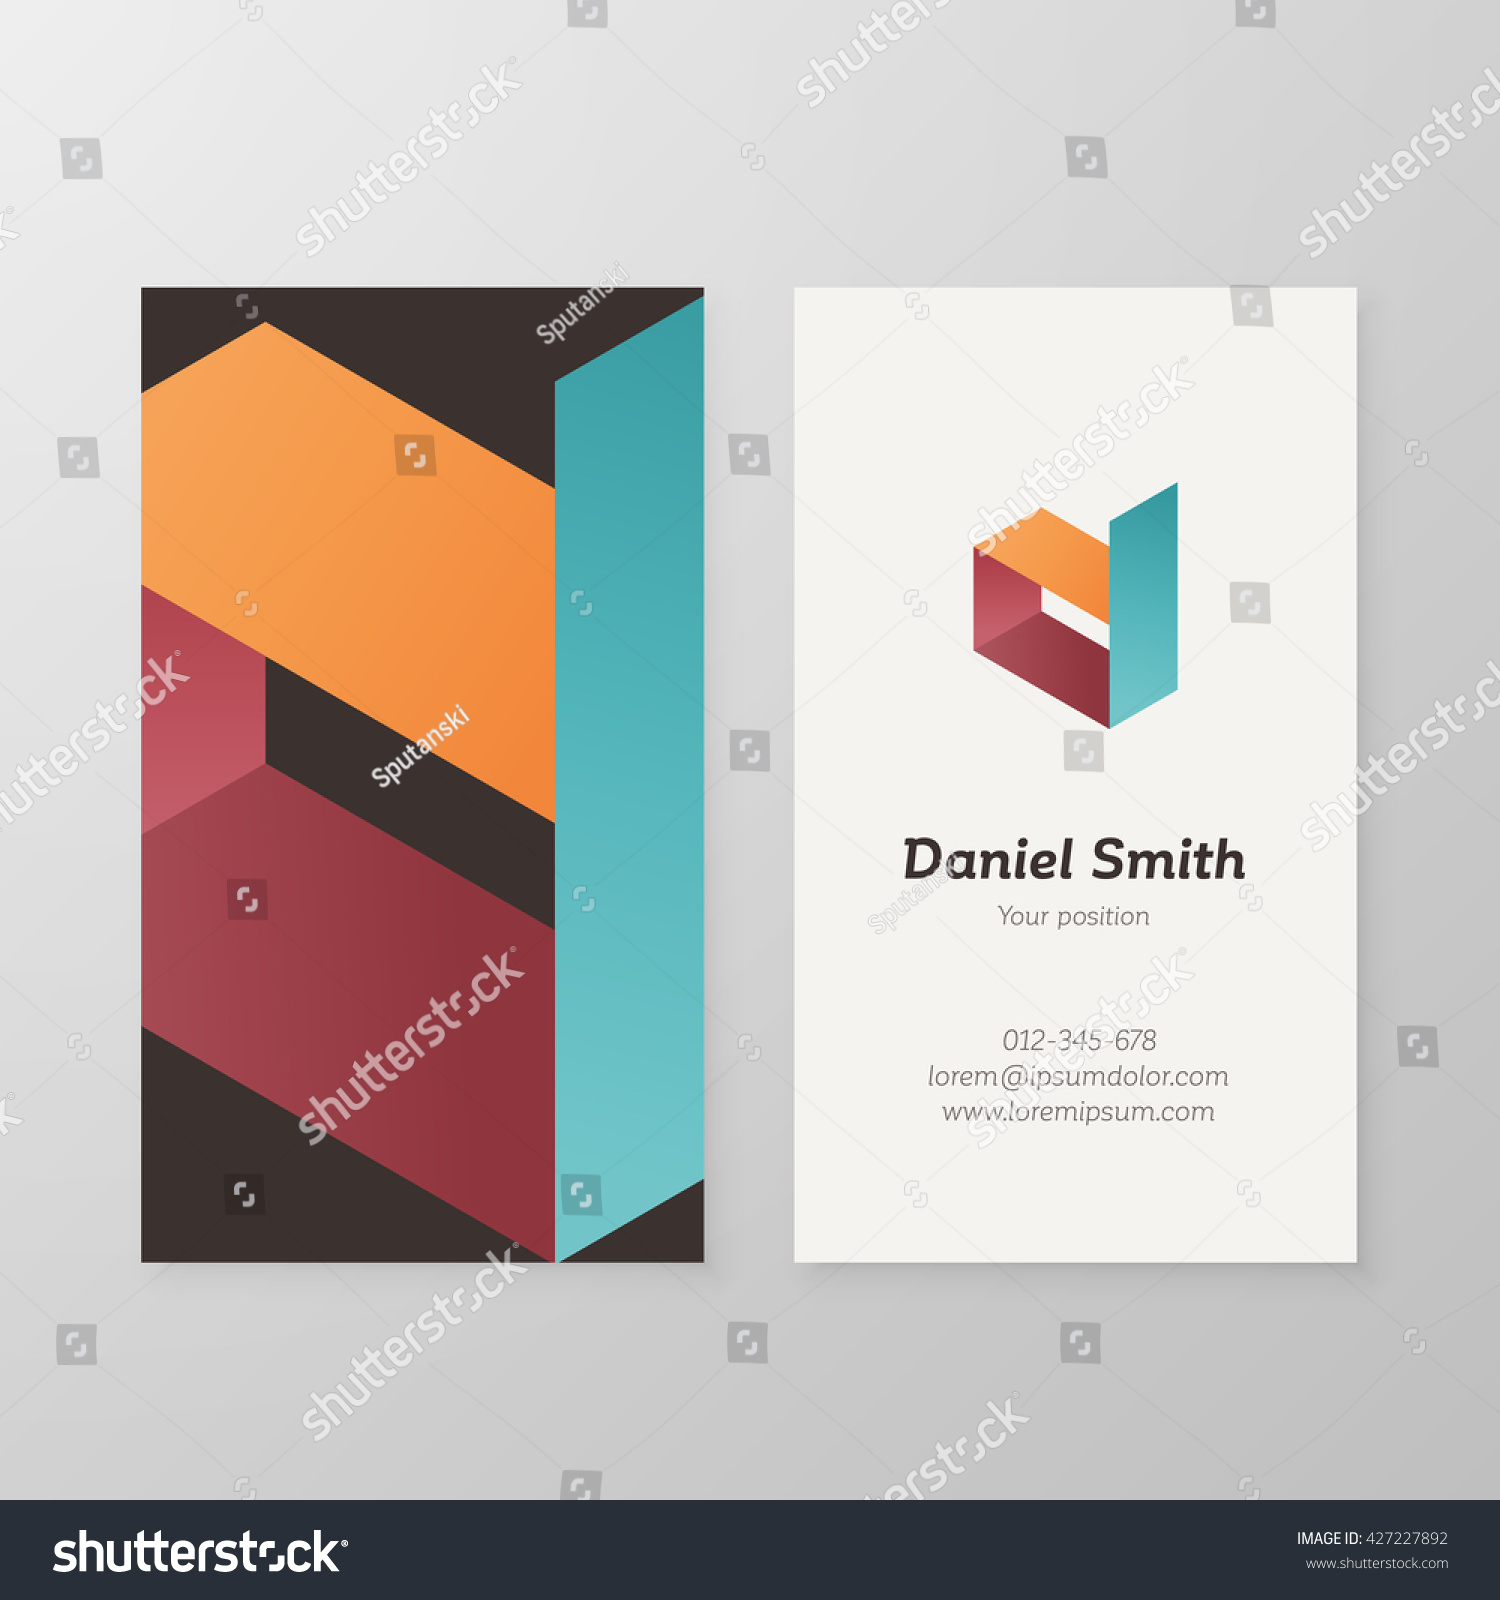 Business card isometric logo letter d stock vector 427227892 business card isometric logo letter d vector template vector business card logo design letter d magicingreecefo Image collections